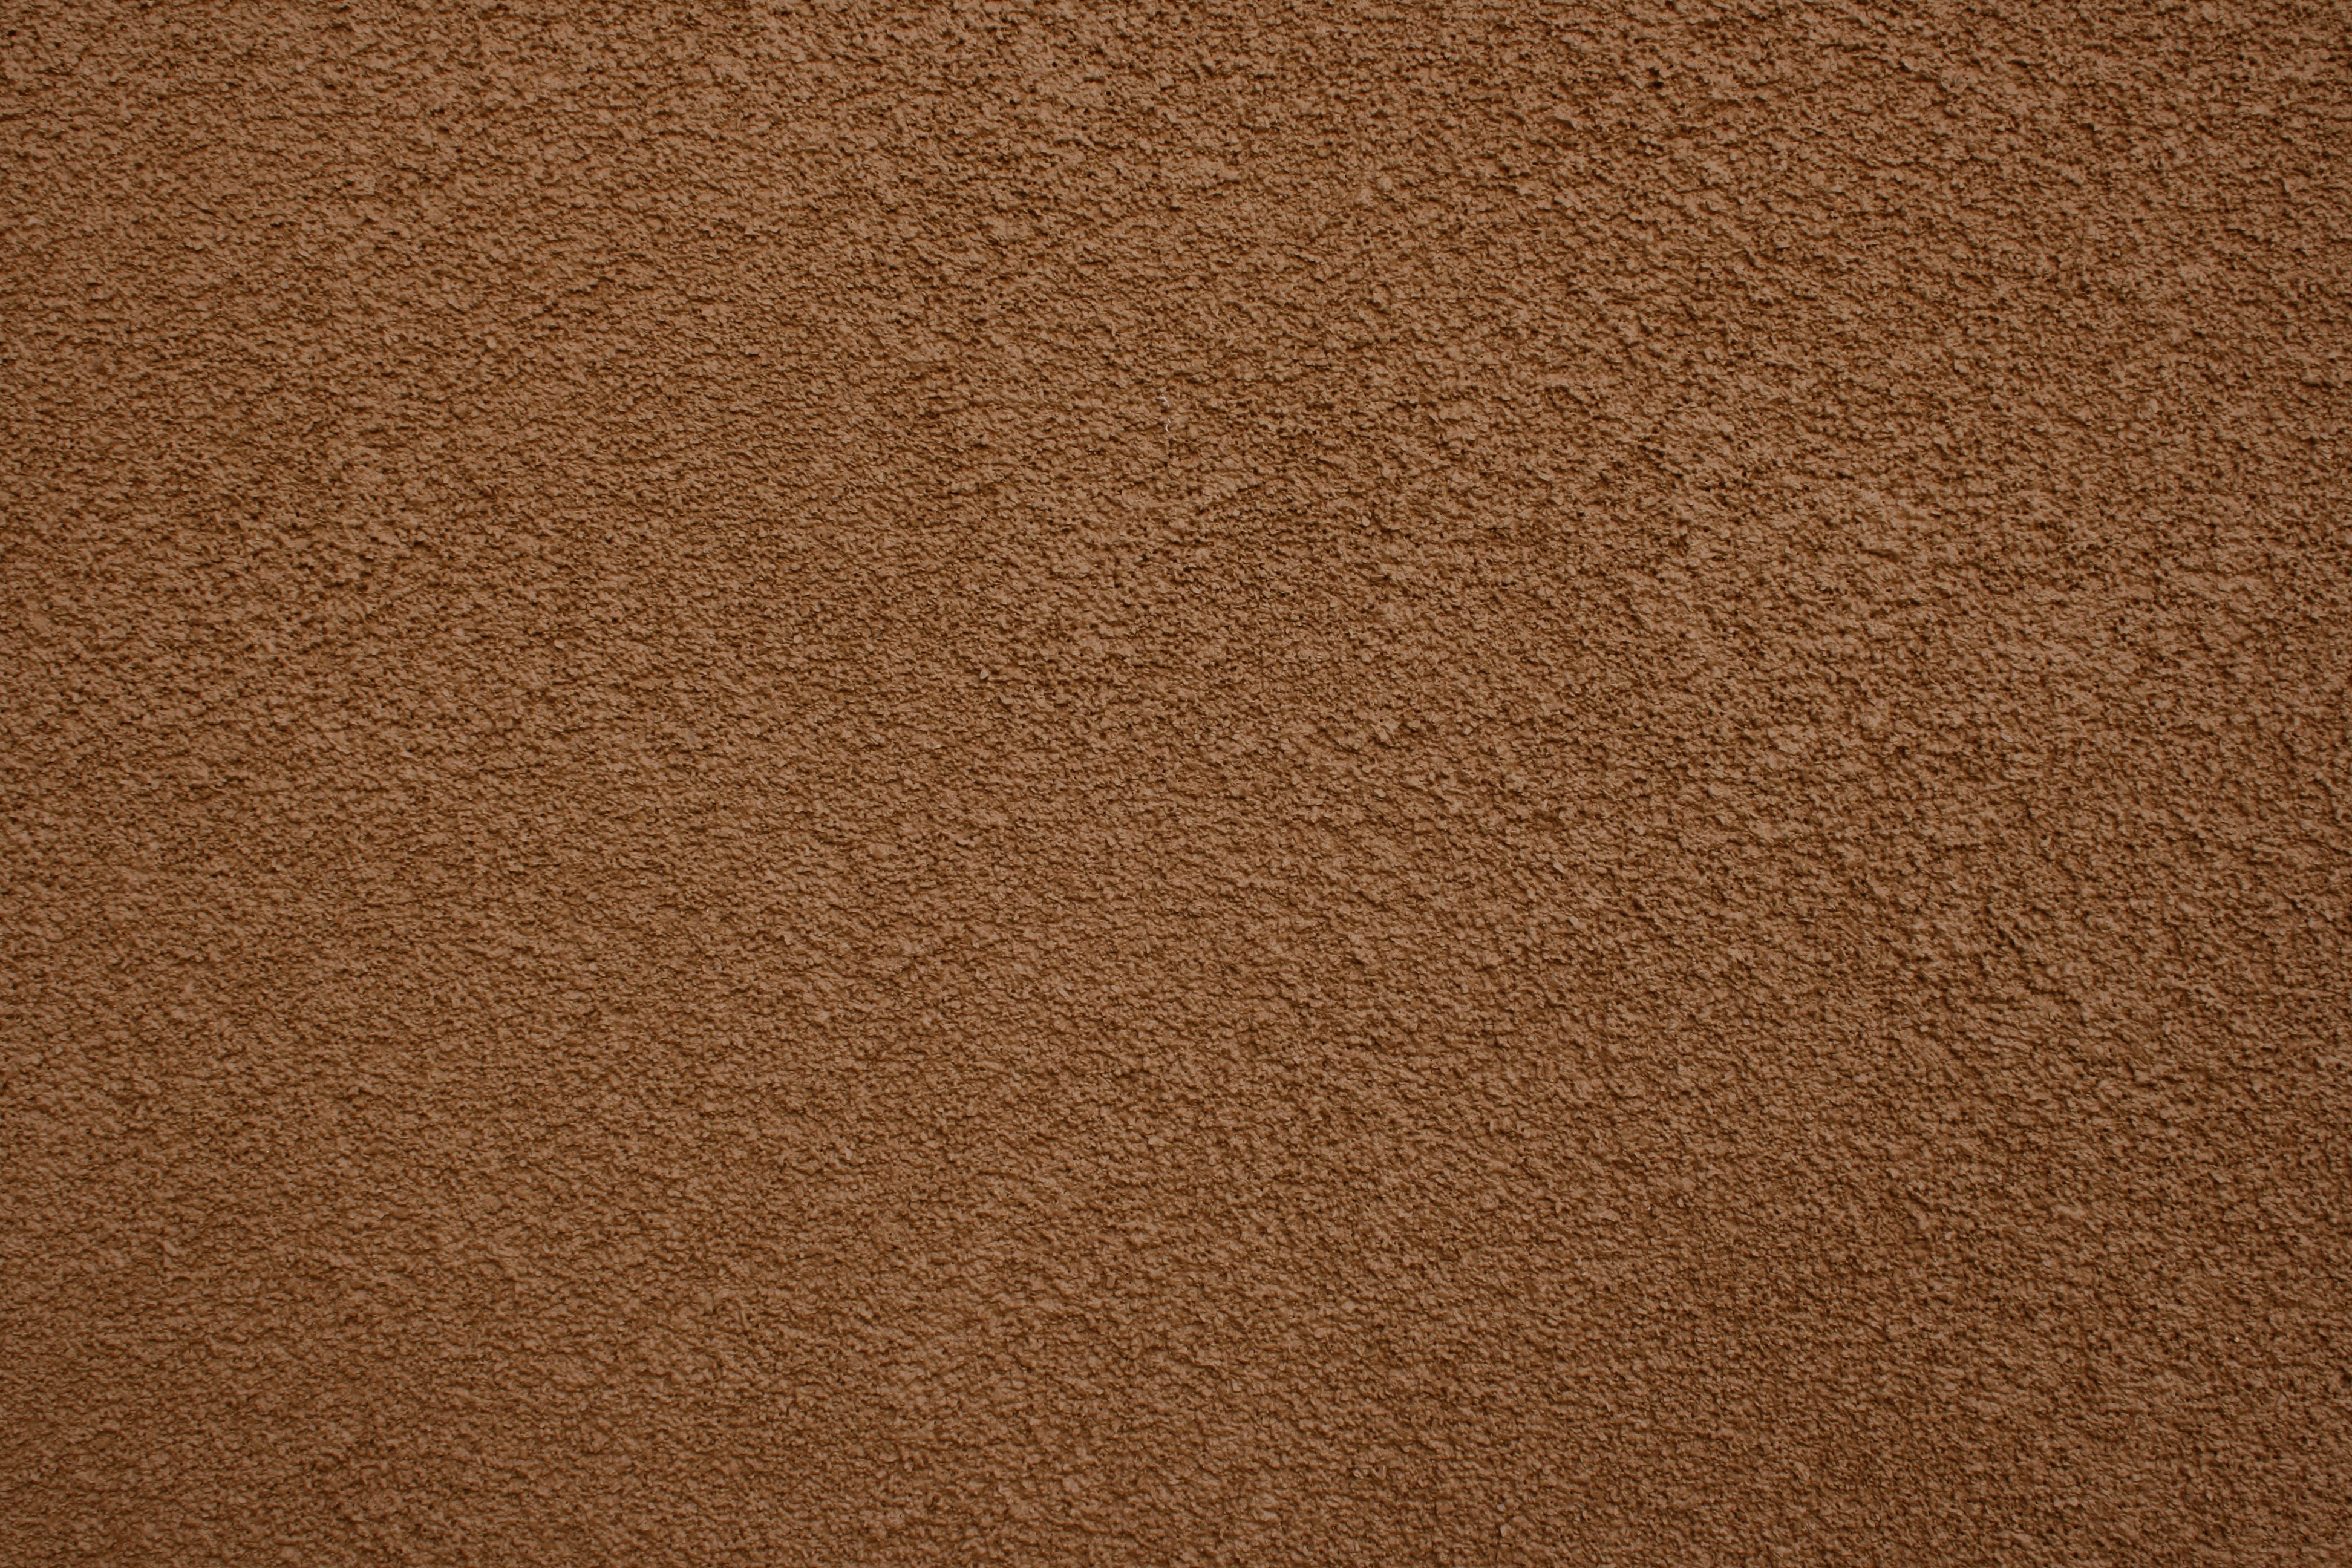 Brown Wallpaper For Walls 2017 Grasscloth Wallpaper